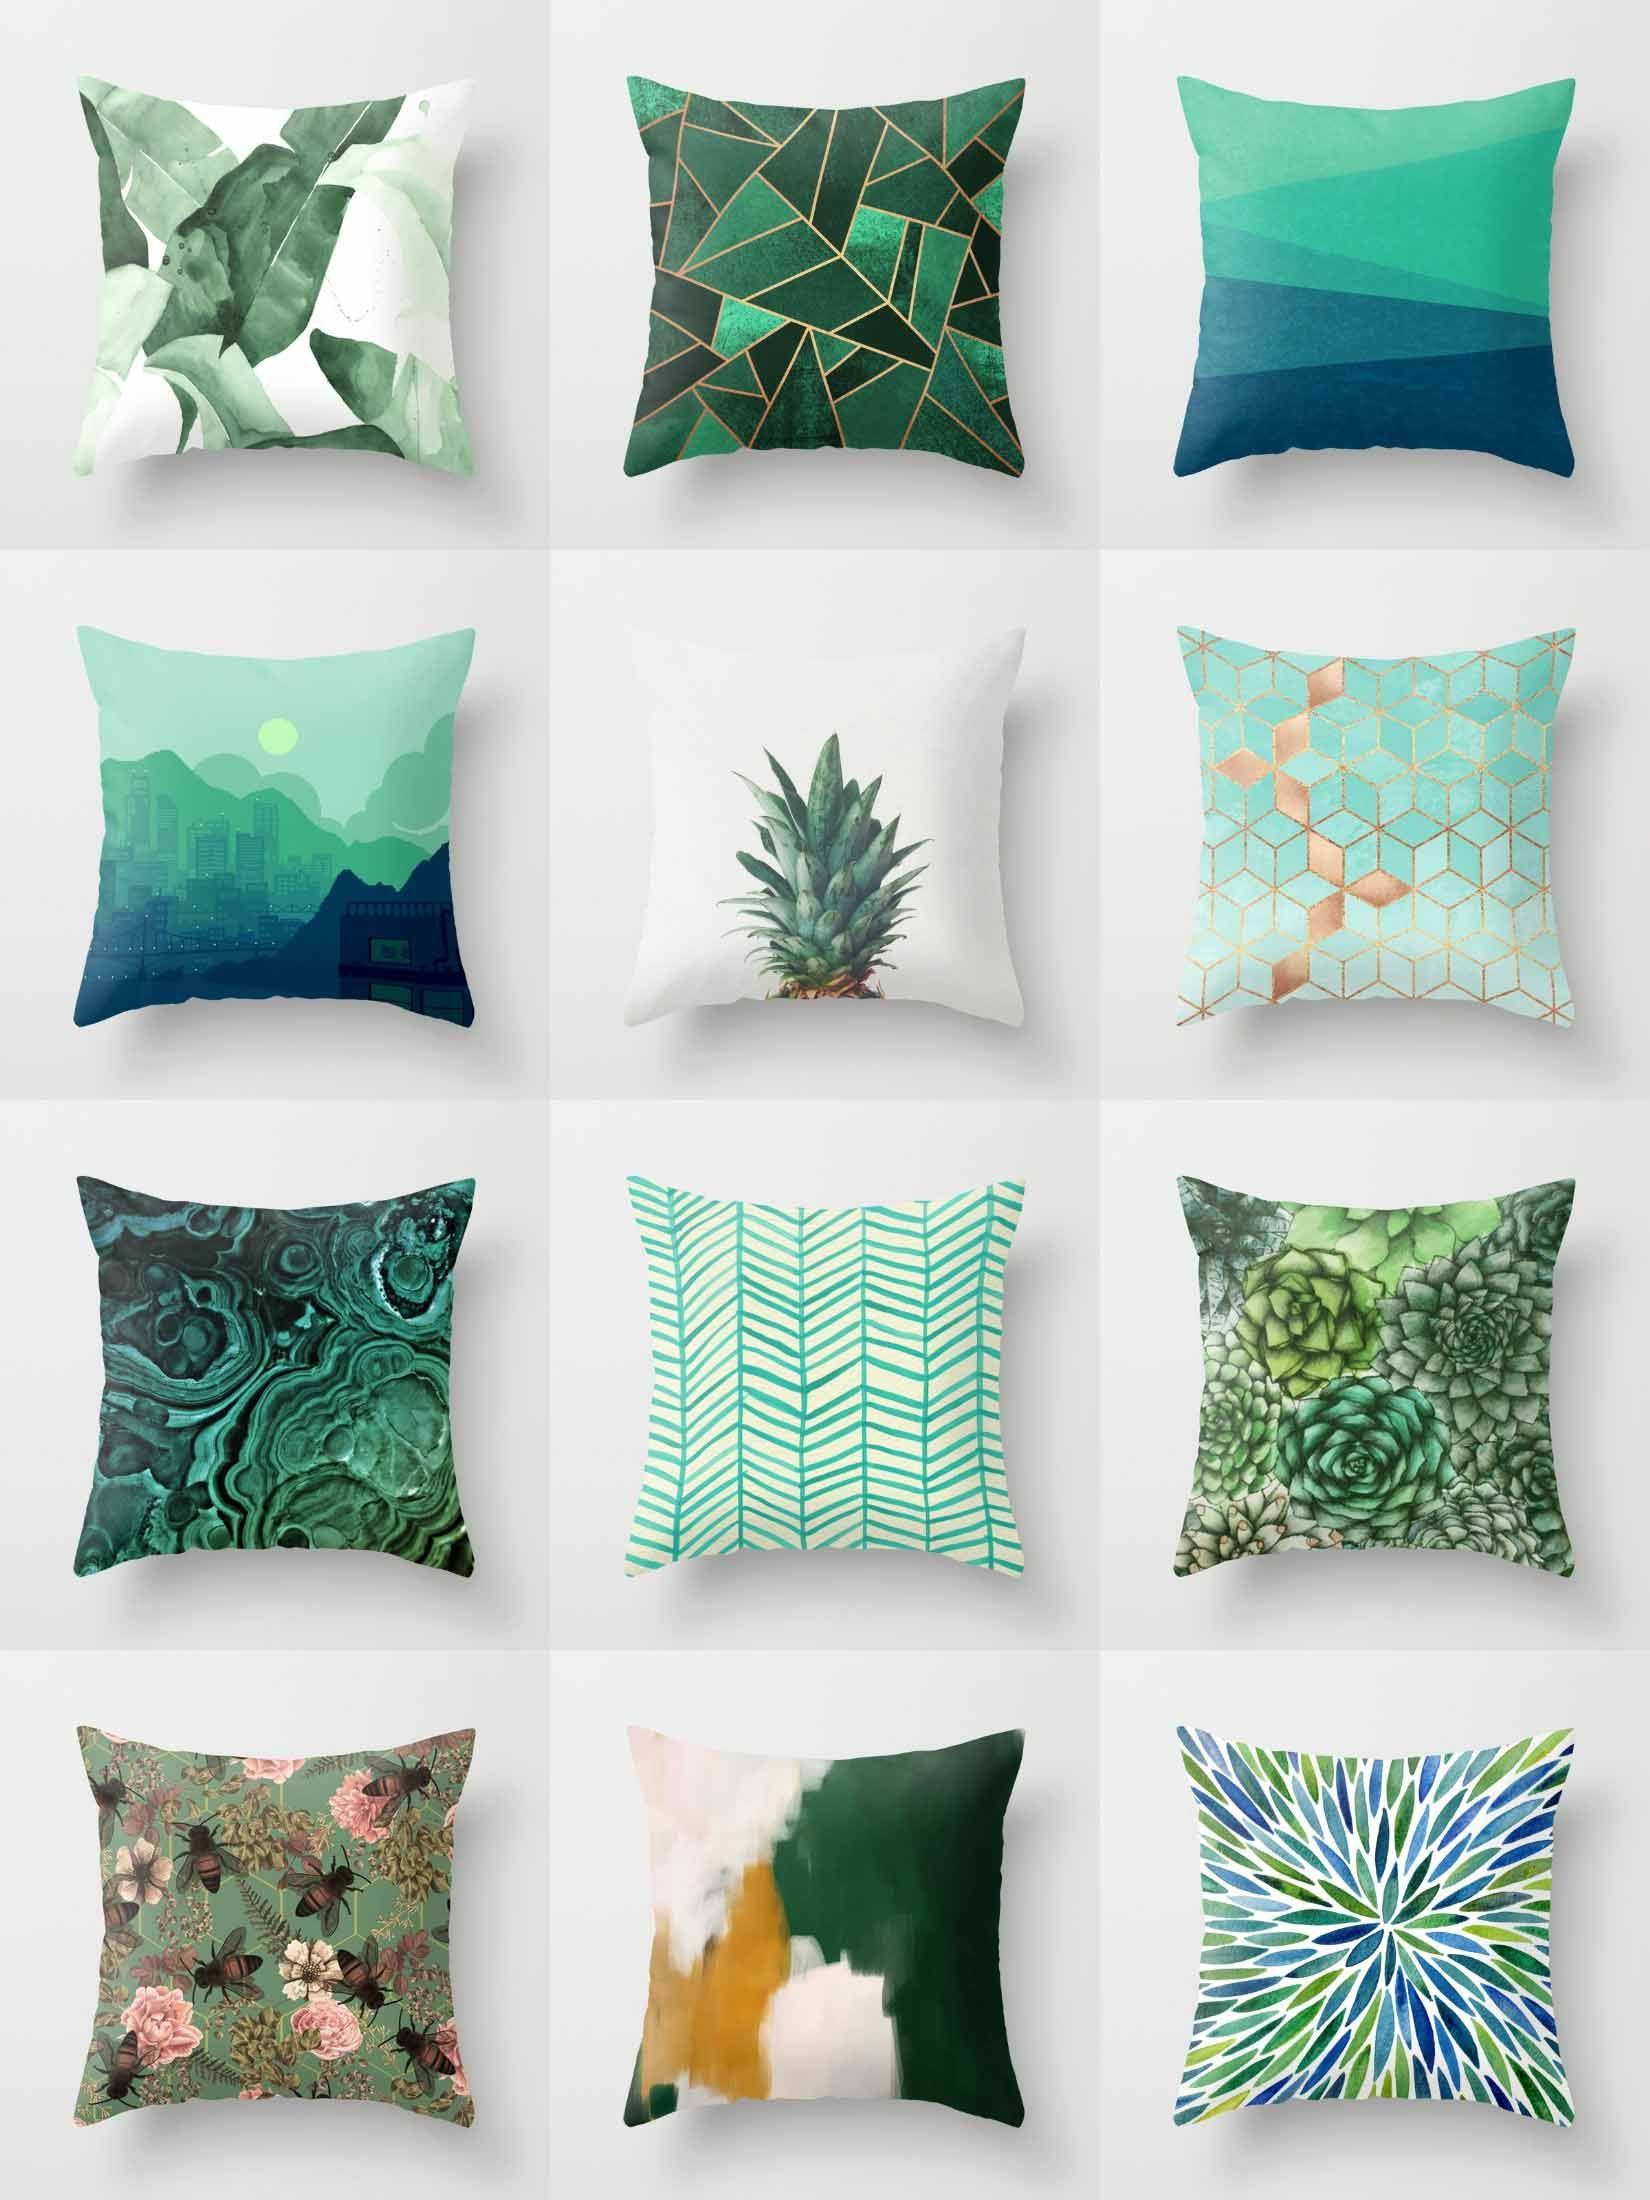 Home goods decorative pillow - Throw Pillows Is Home To Hundreds Of Thousands Of Artists From Around The Globe Uploading And Selling Their Original Works As Premium Consumer Goods From